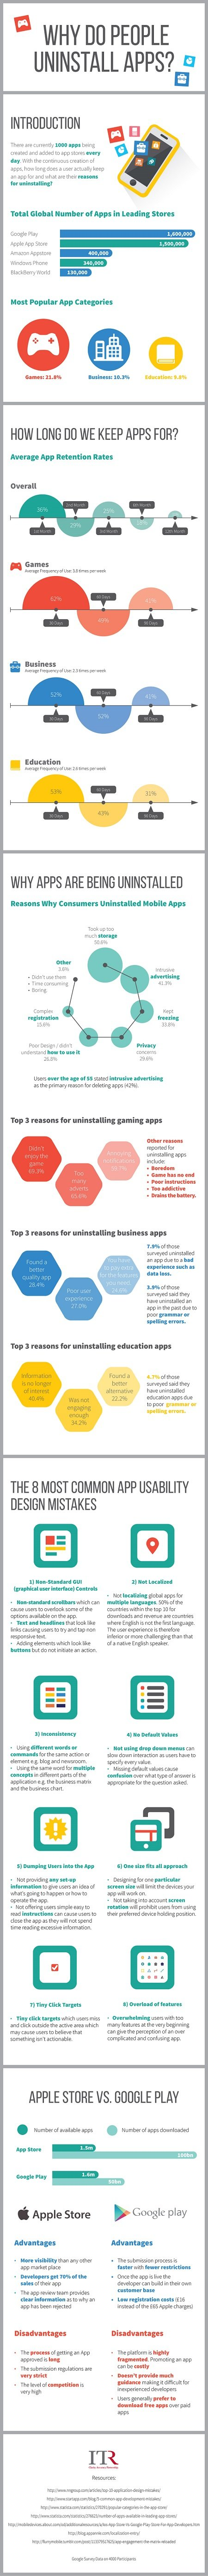 Infographic Why people uninstall apps